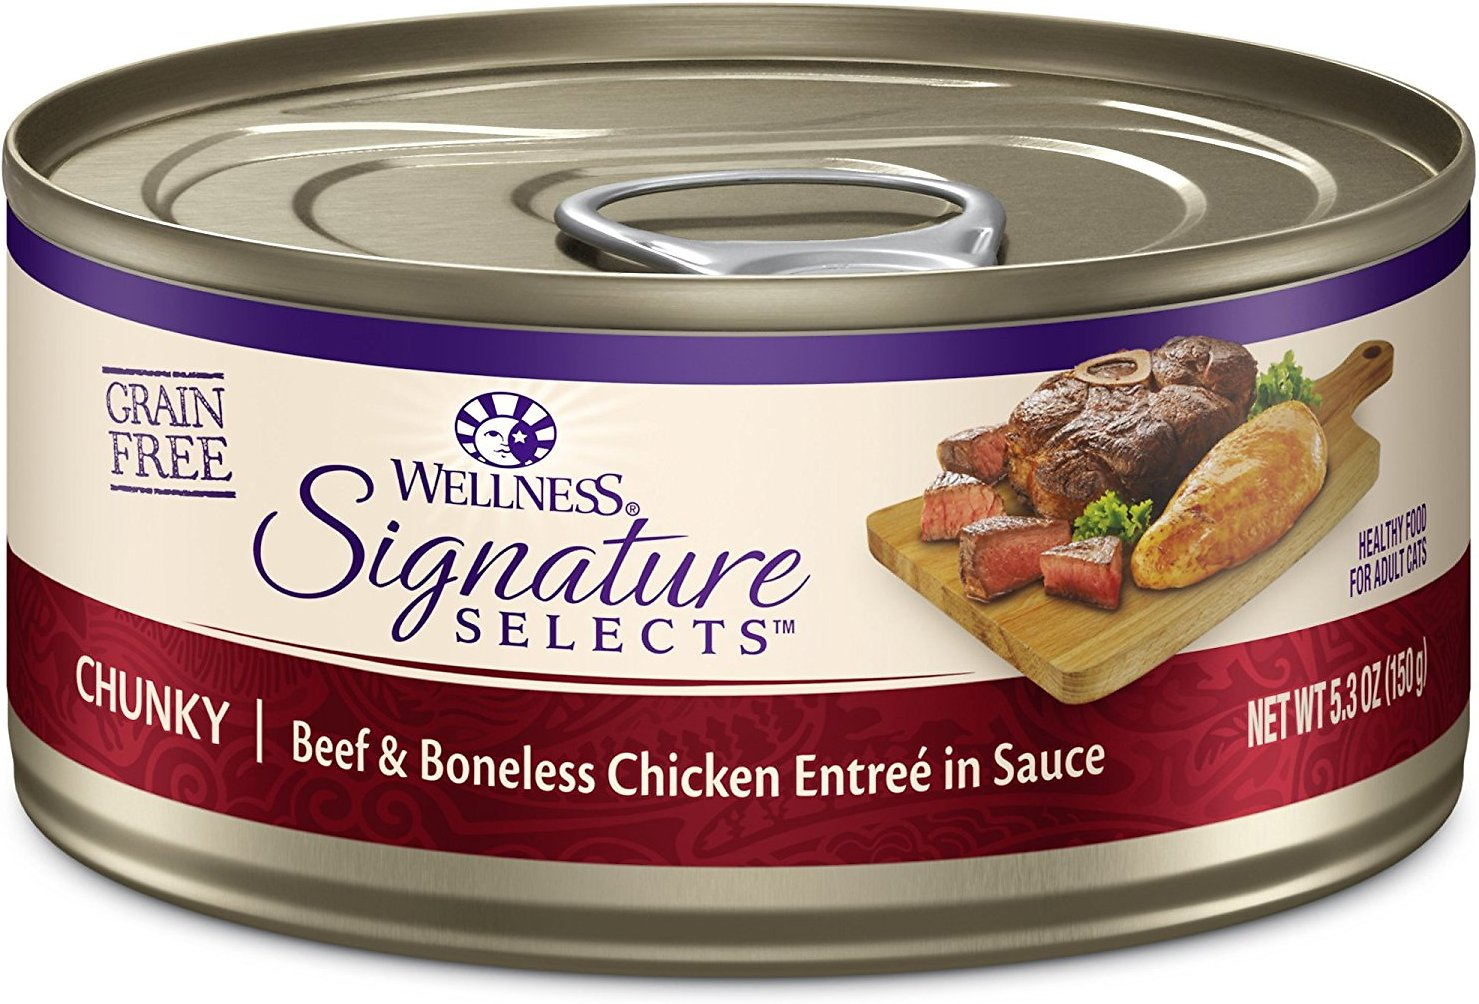 Wellness CORE Signature Selects Chunky Beef & Boneless Chicken Entree in Sauce Grain-Free Canned Cat Food, 5.3-oz